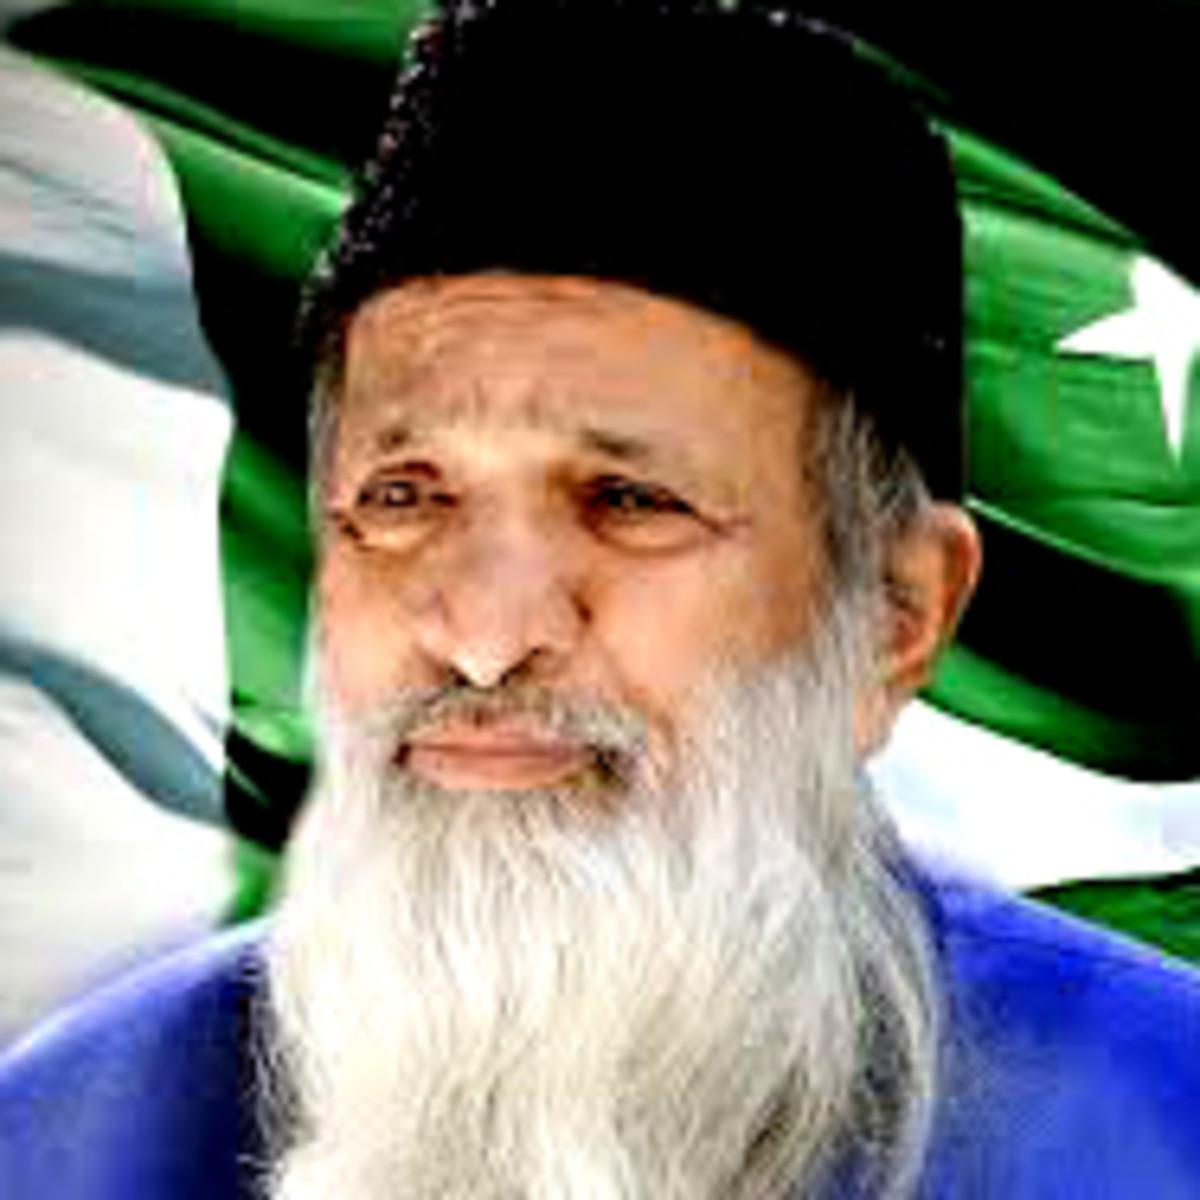 Abdul Sattar Edhi - the humanitarian who helped change for the better, the lives of millions of people in Pakistan